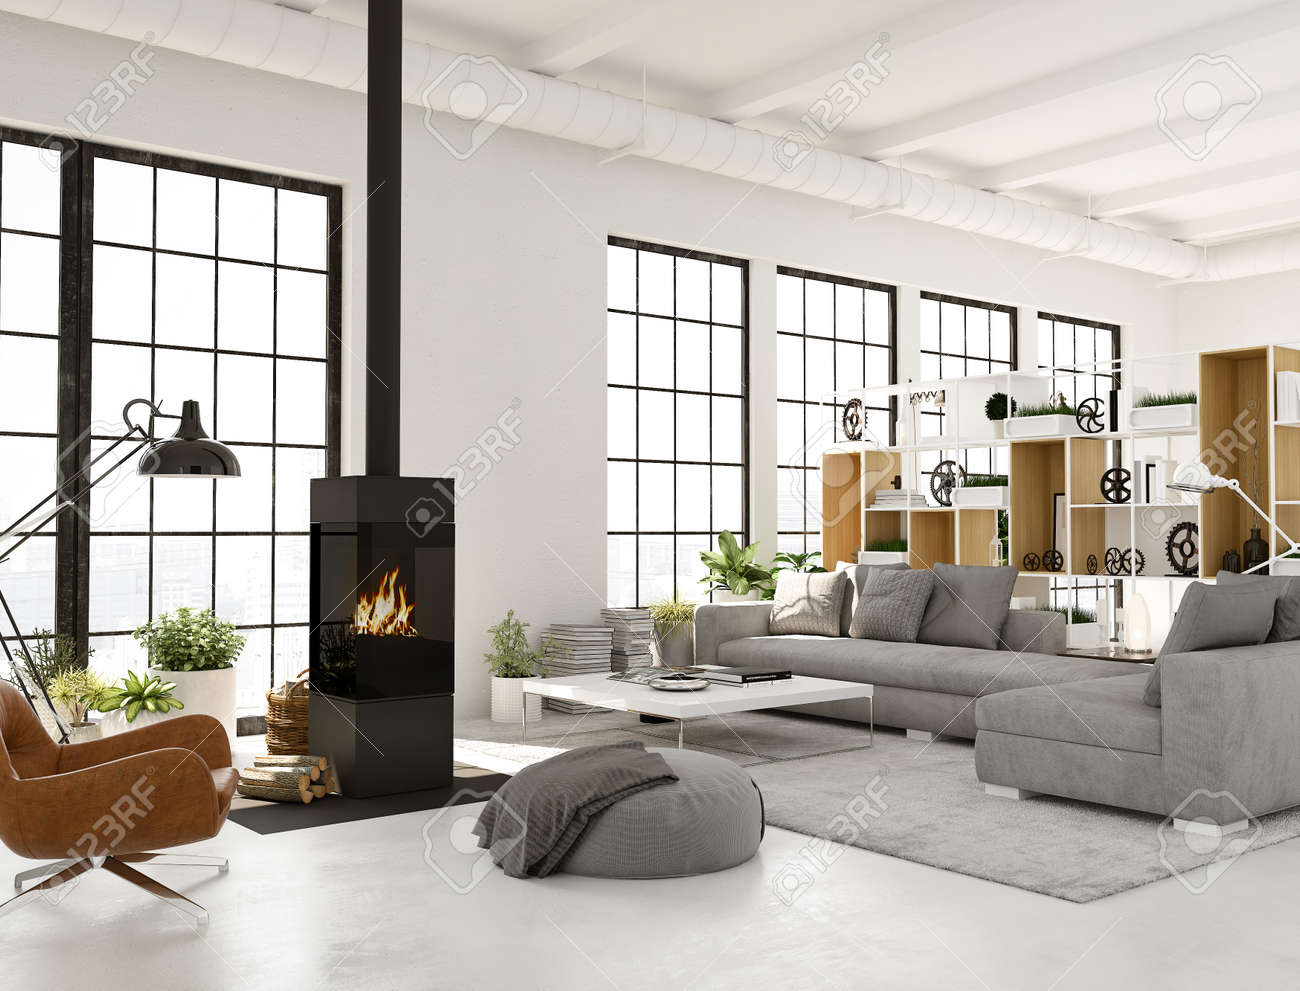 3d Rendering Living Room With Fireplace In Modern Loft Apartment